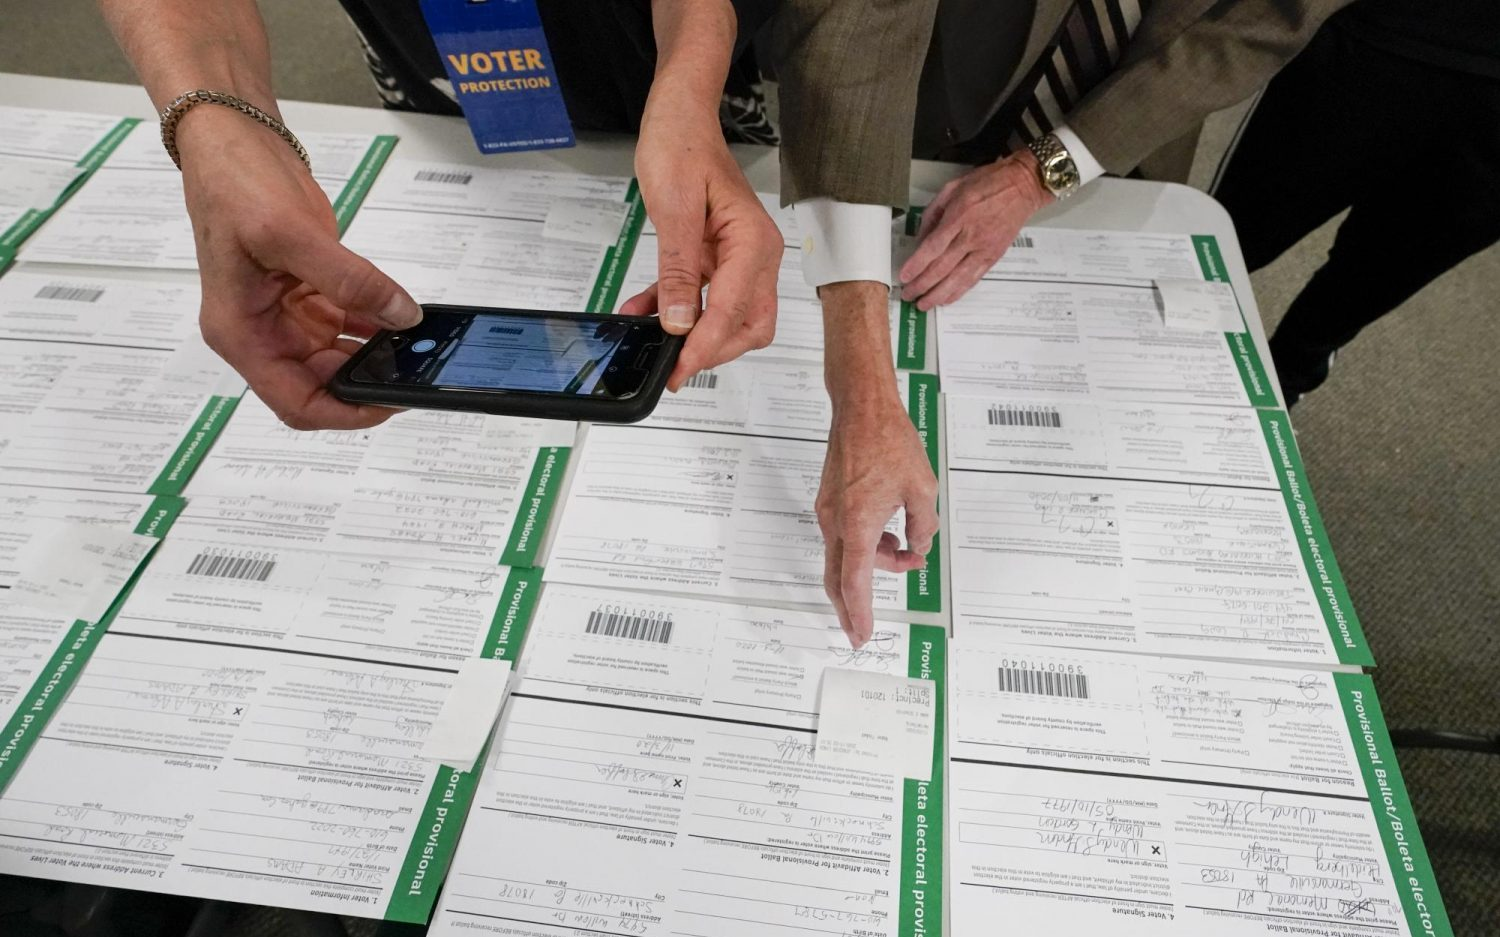 Little traction for election fraud lawsuits